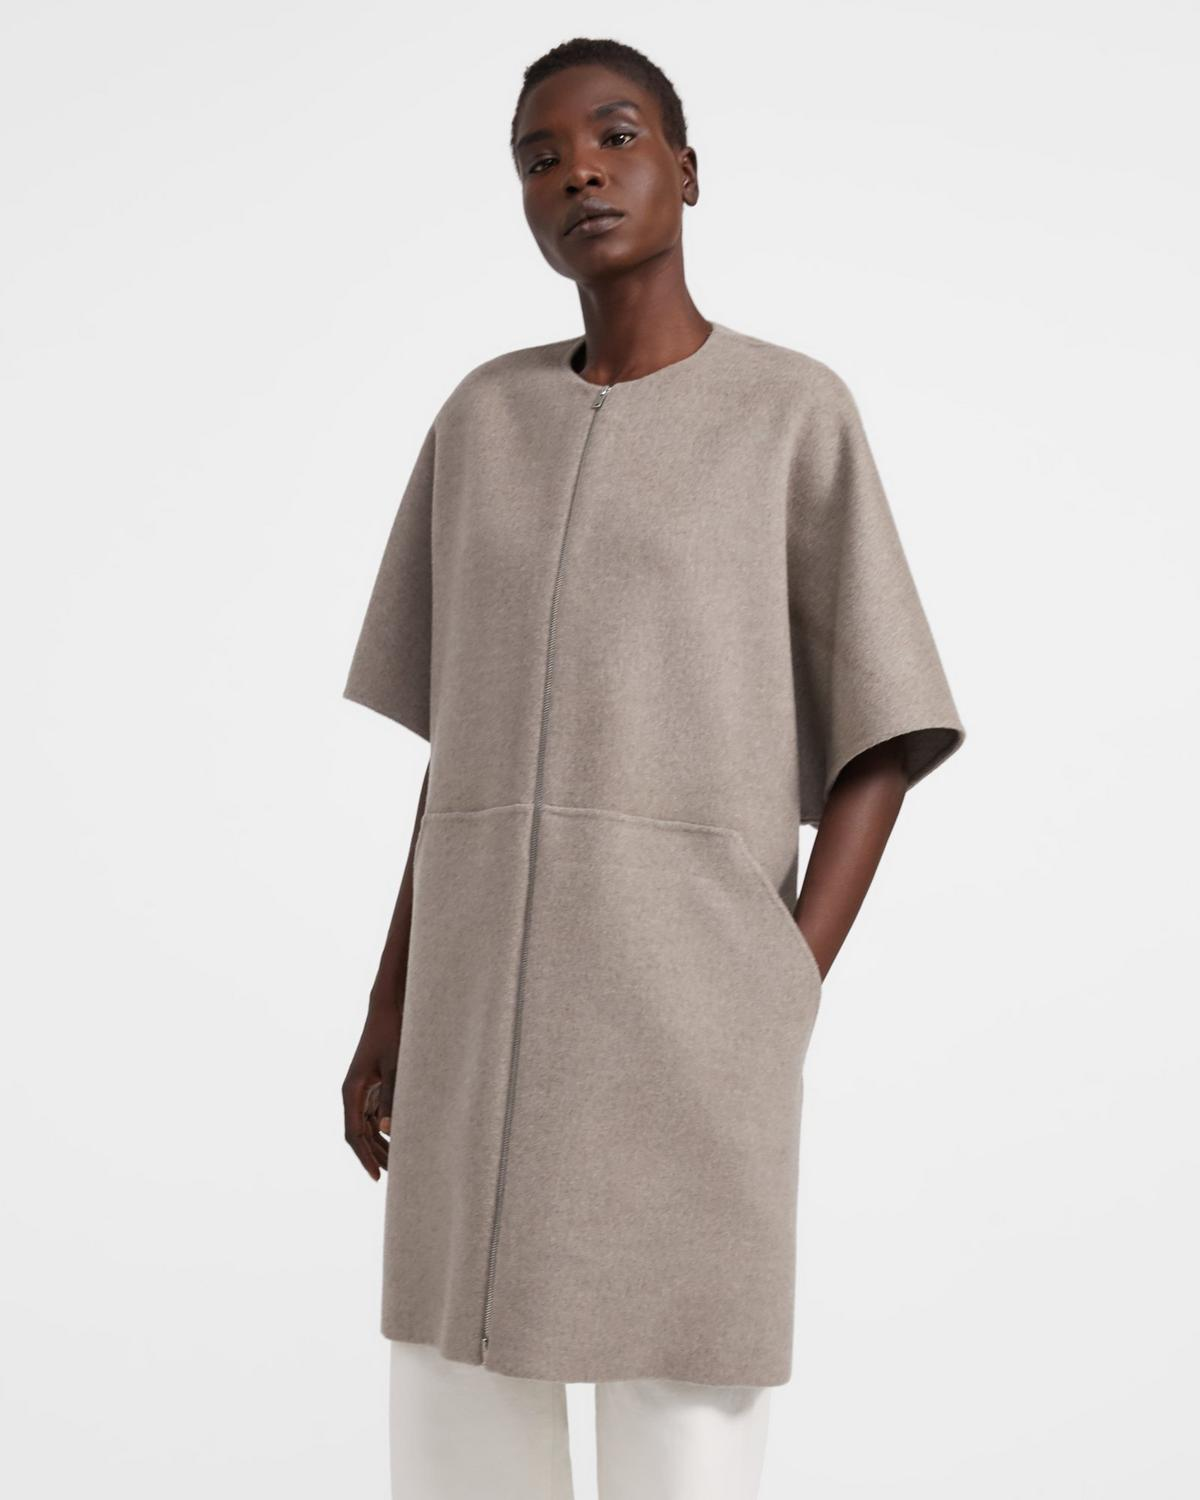 Bell Coat in Double-Face Wool-Cashmere